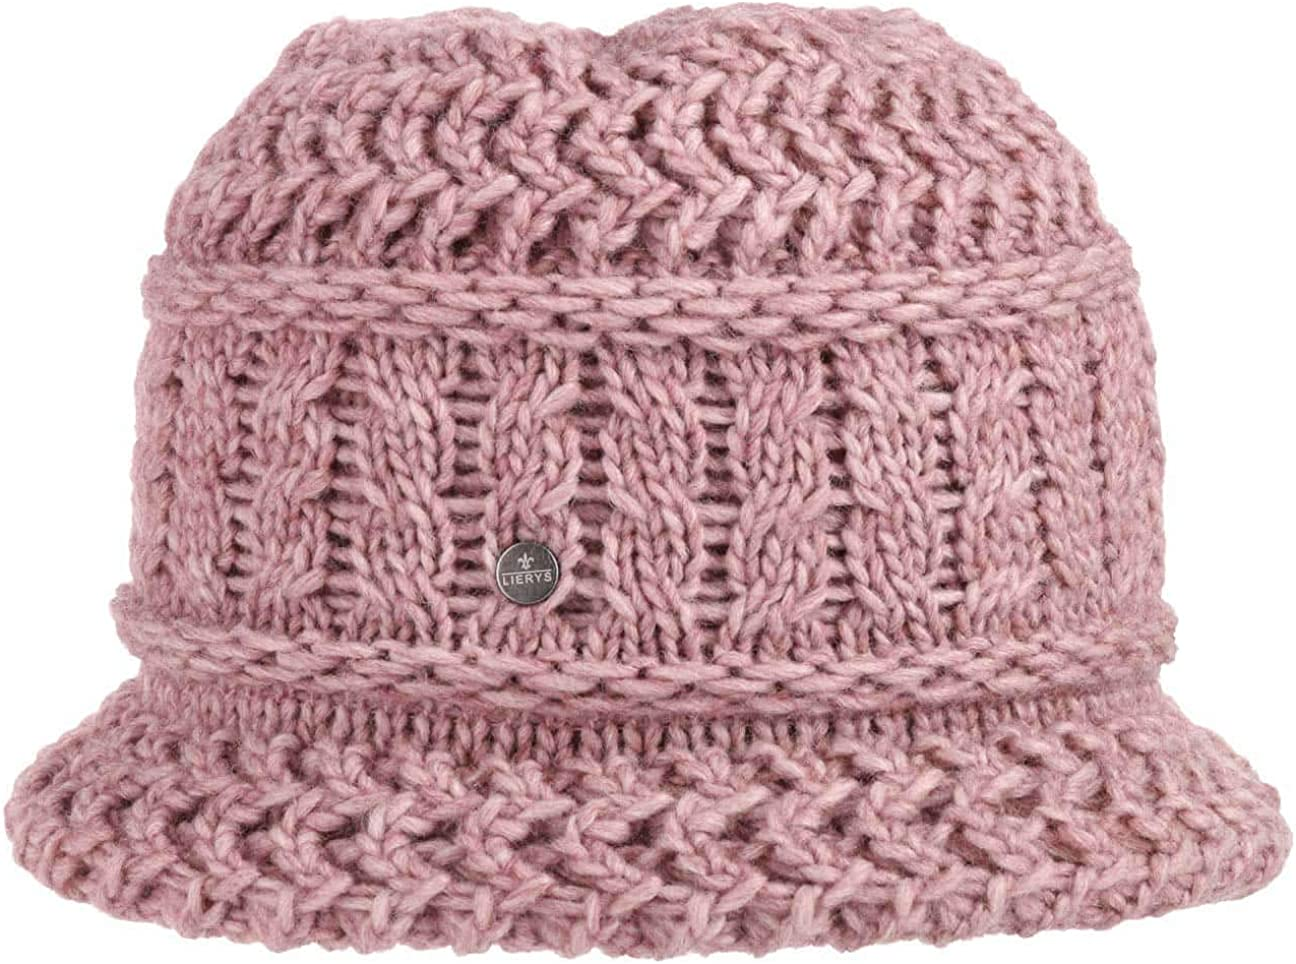 Lierys Classico Knit Hat Women Made チープ Germany in 最新 -